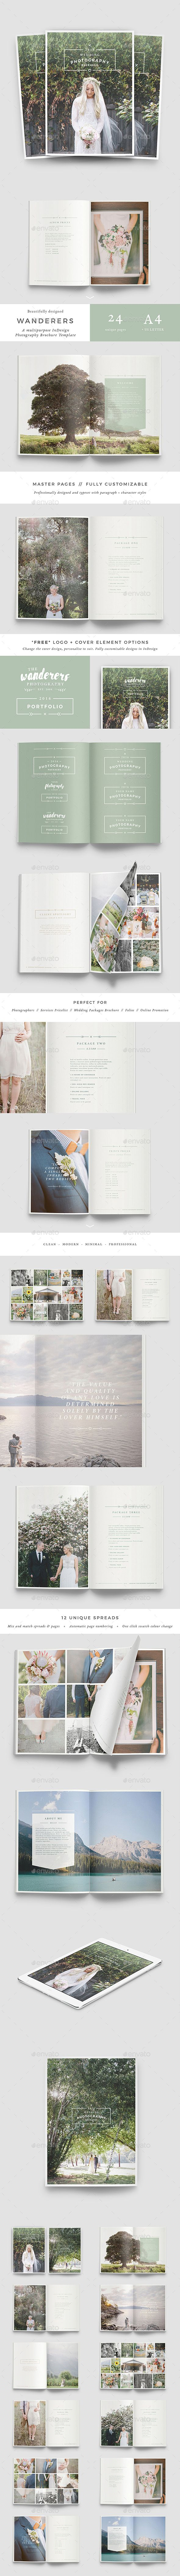 Wedding Photography Brochure  — InDesign Template #minimalist #pricing brochure…